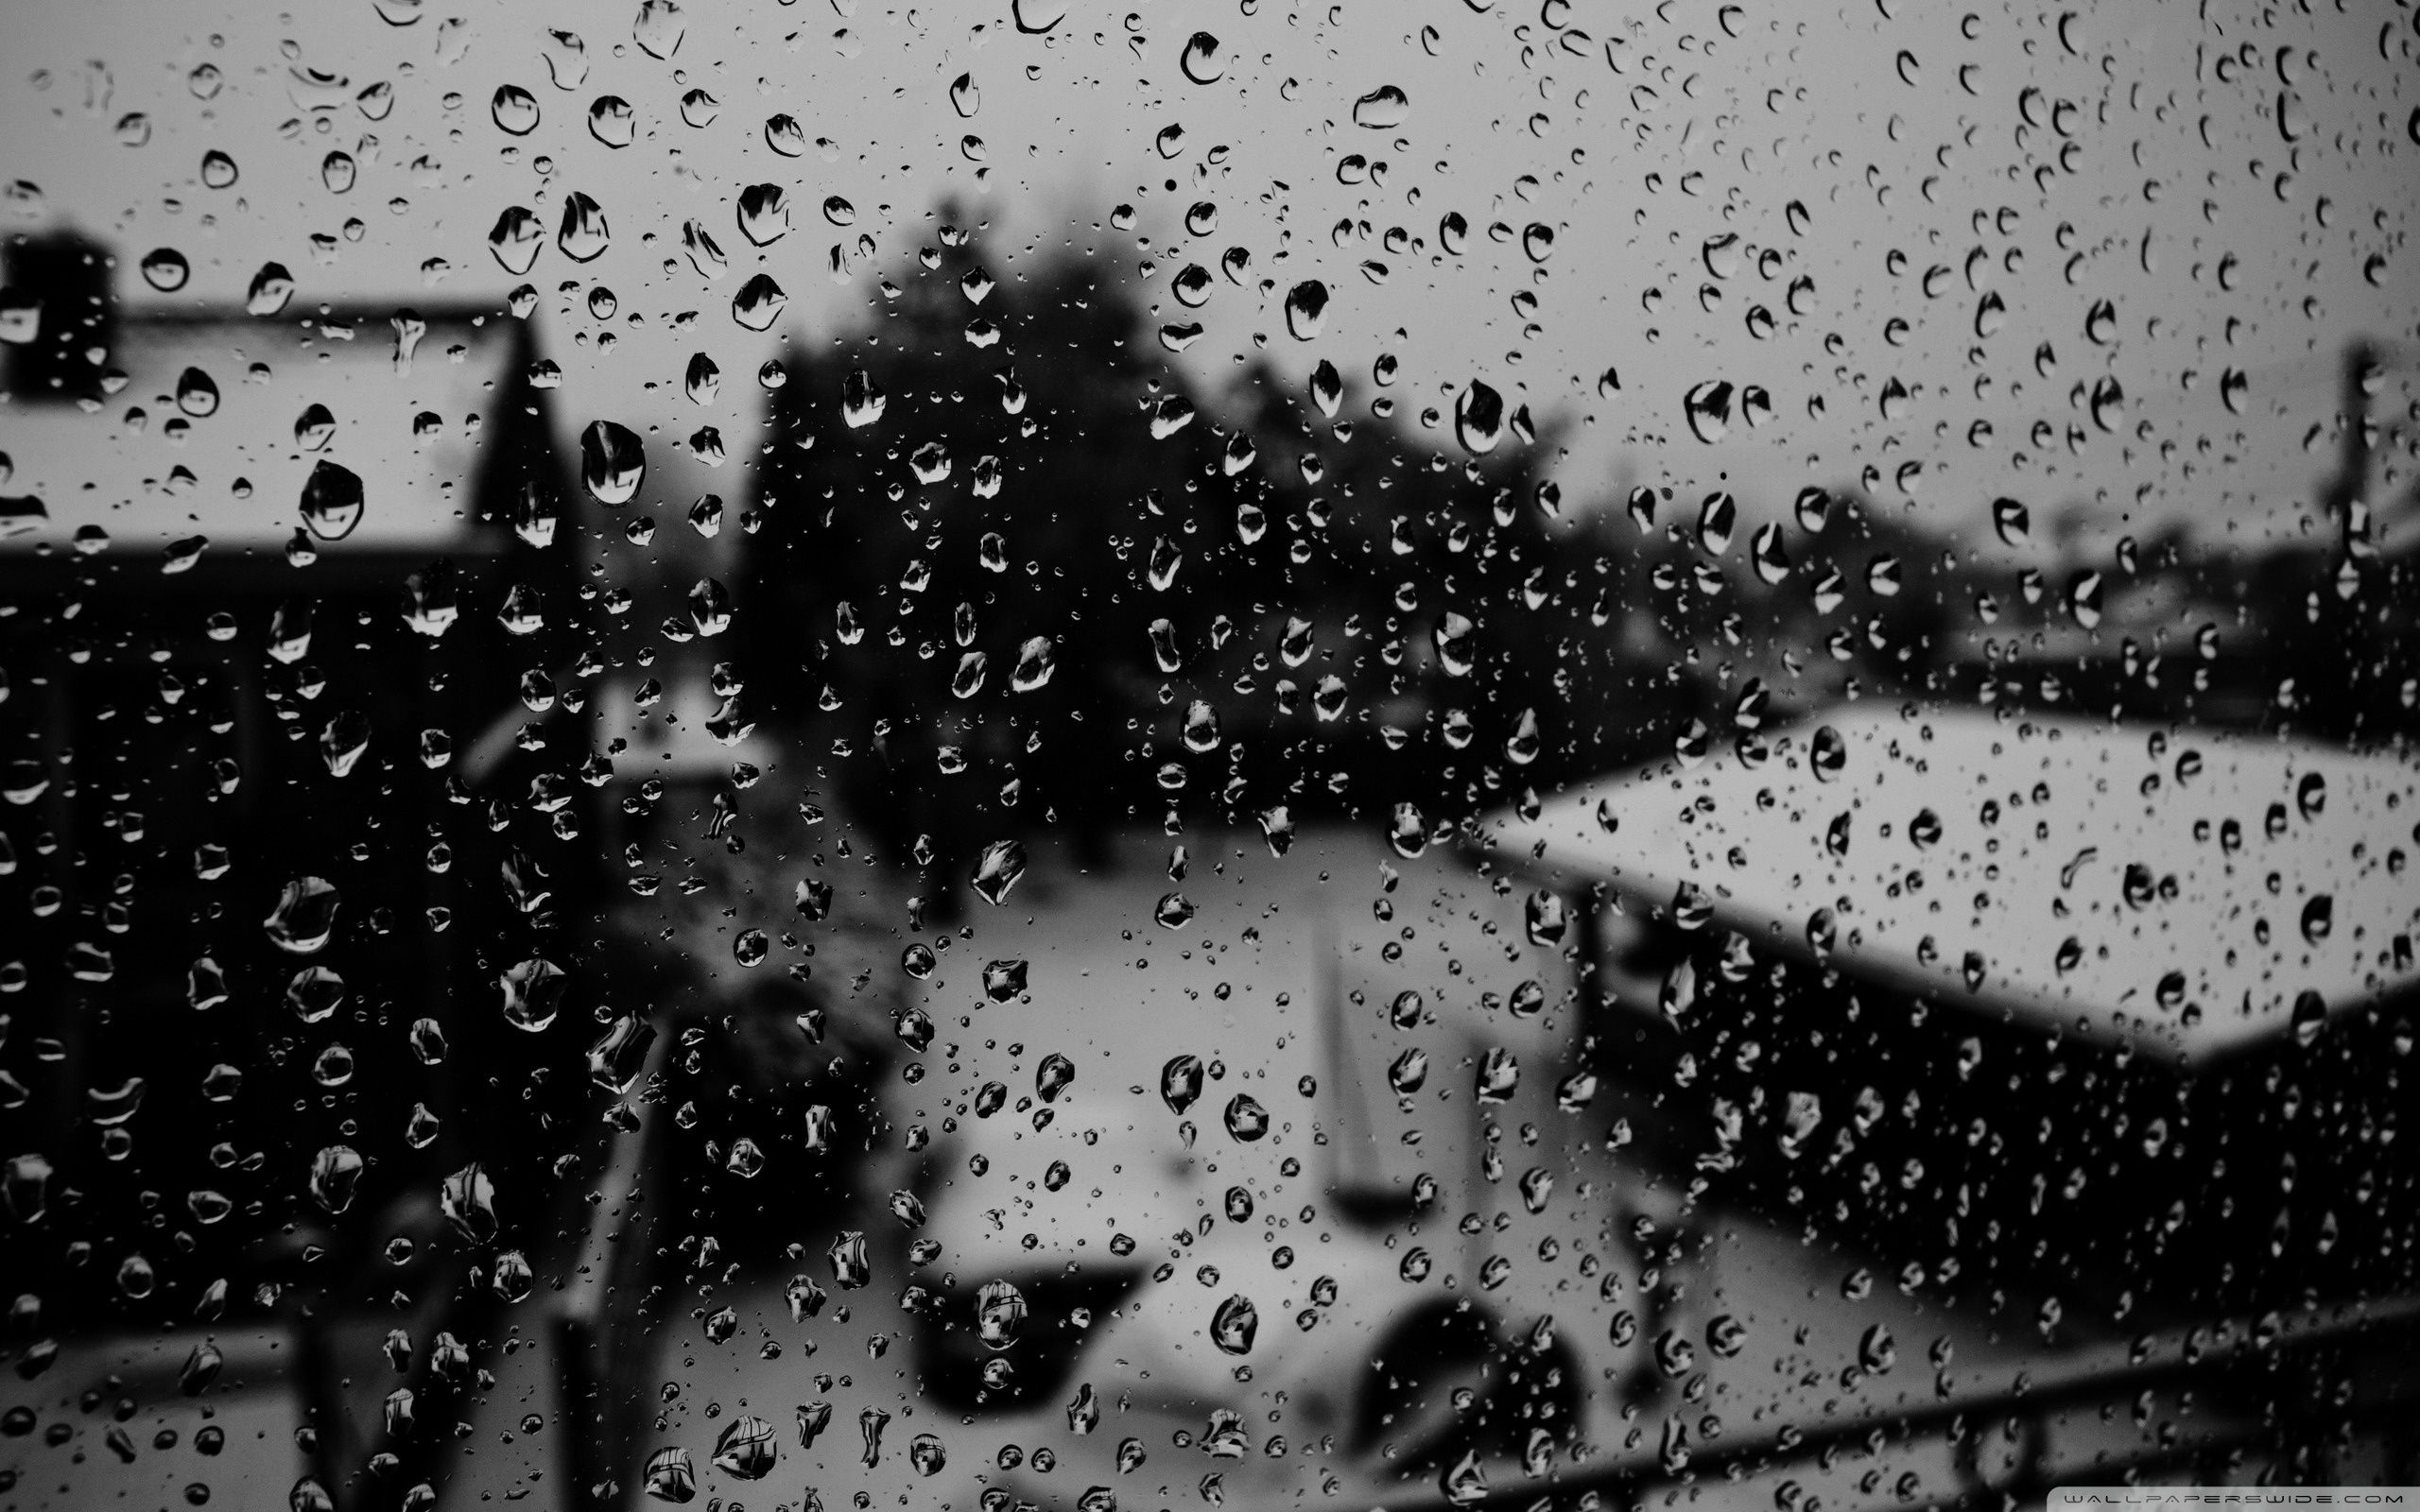 Raindrops Wallpapers Top Free Raindrops Backgrounds Wallpaperaccess